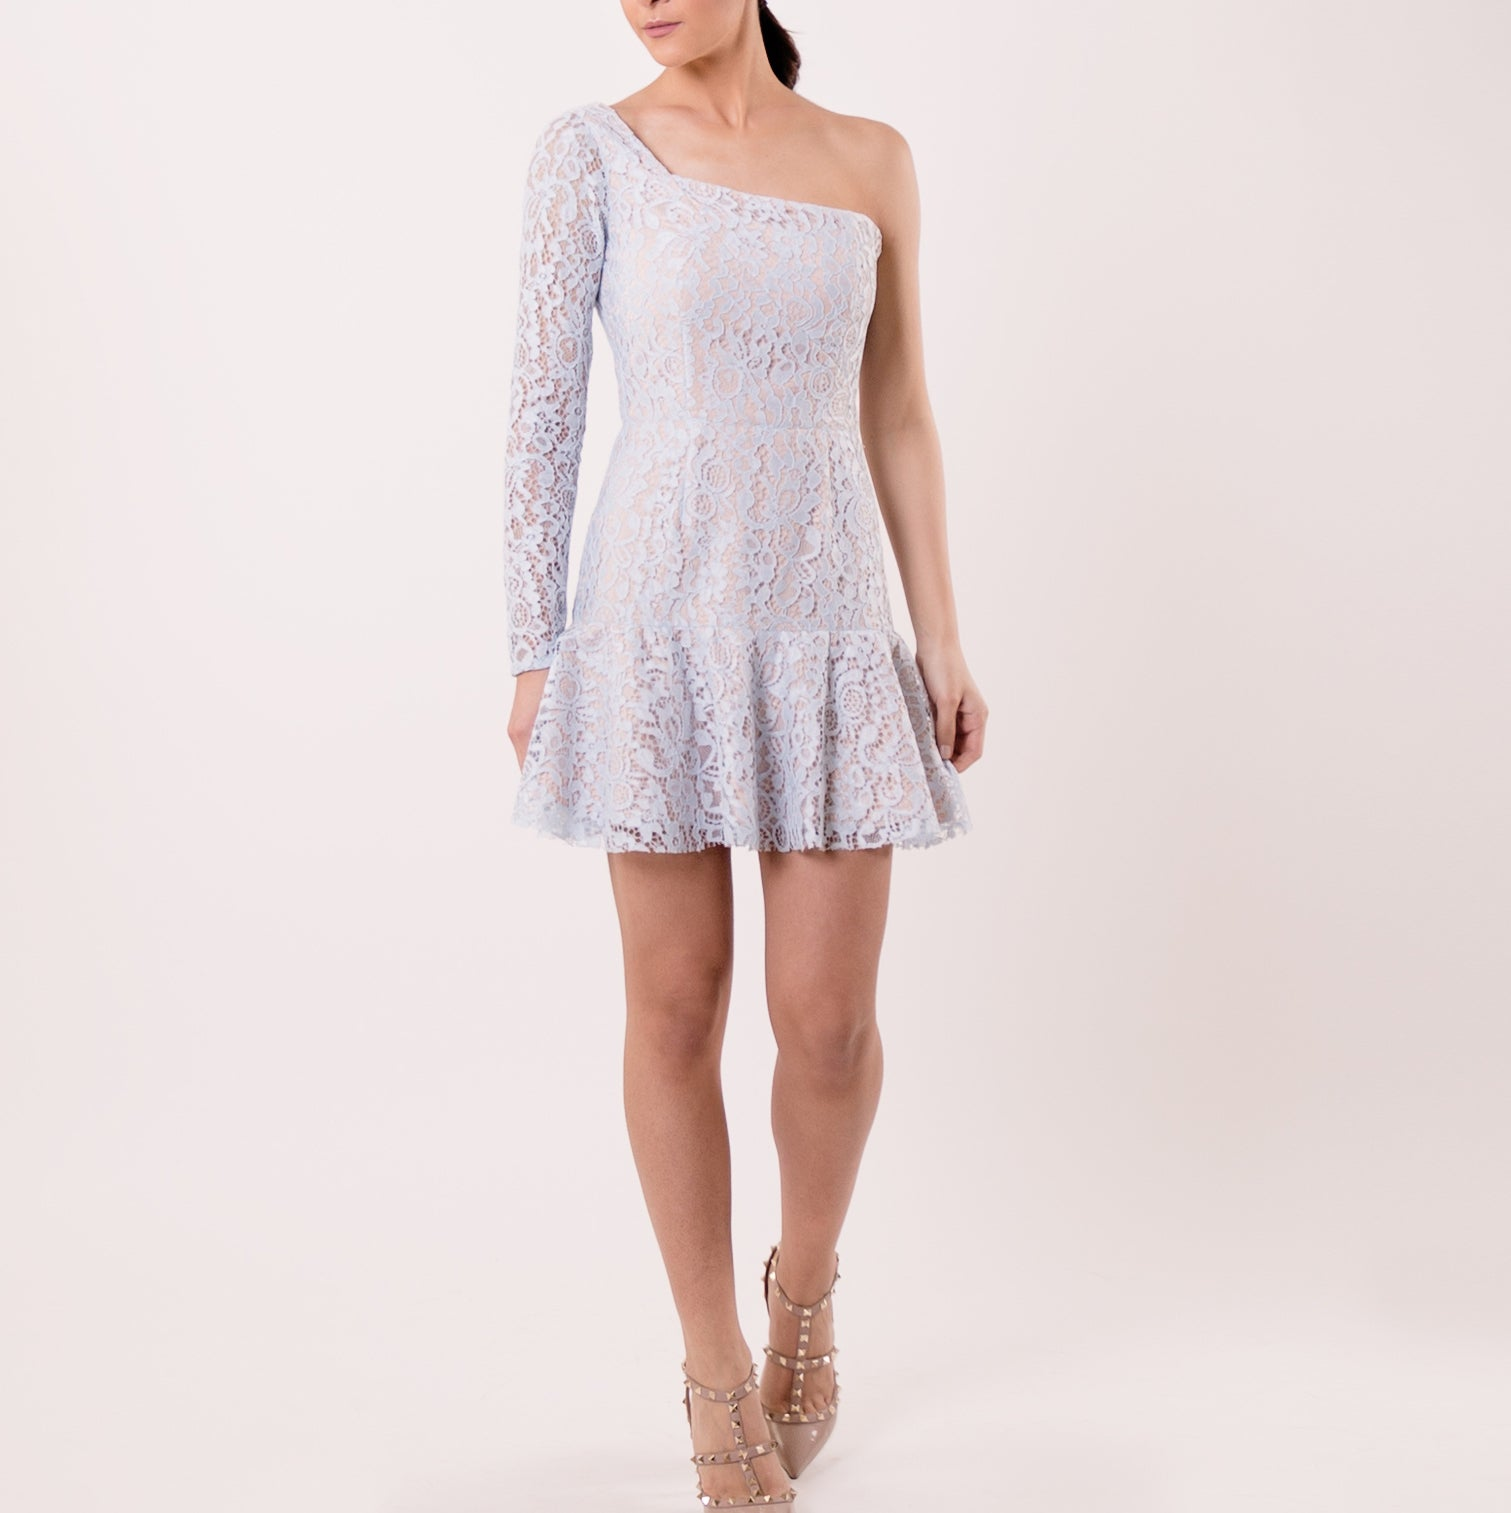 Light Blue One-Shoulder Lace Ruffled Dress